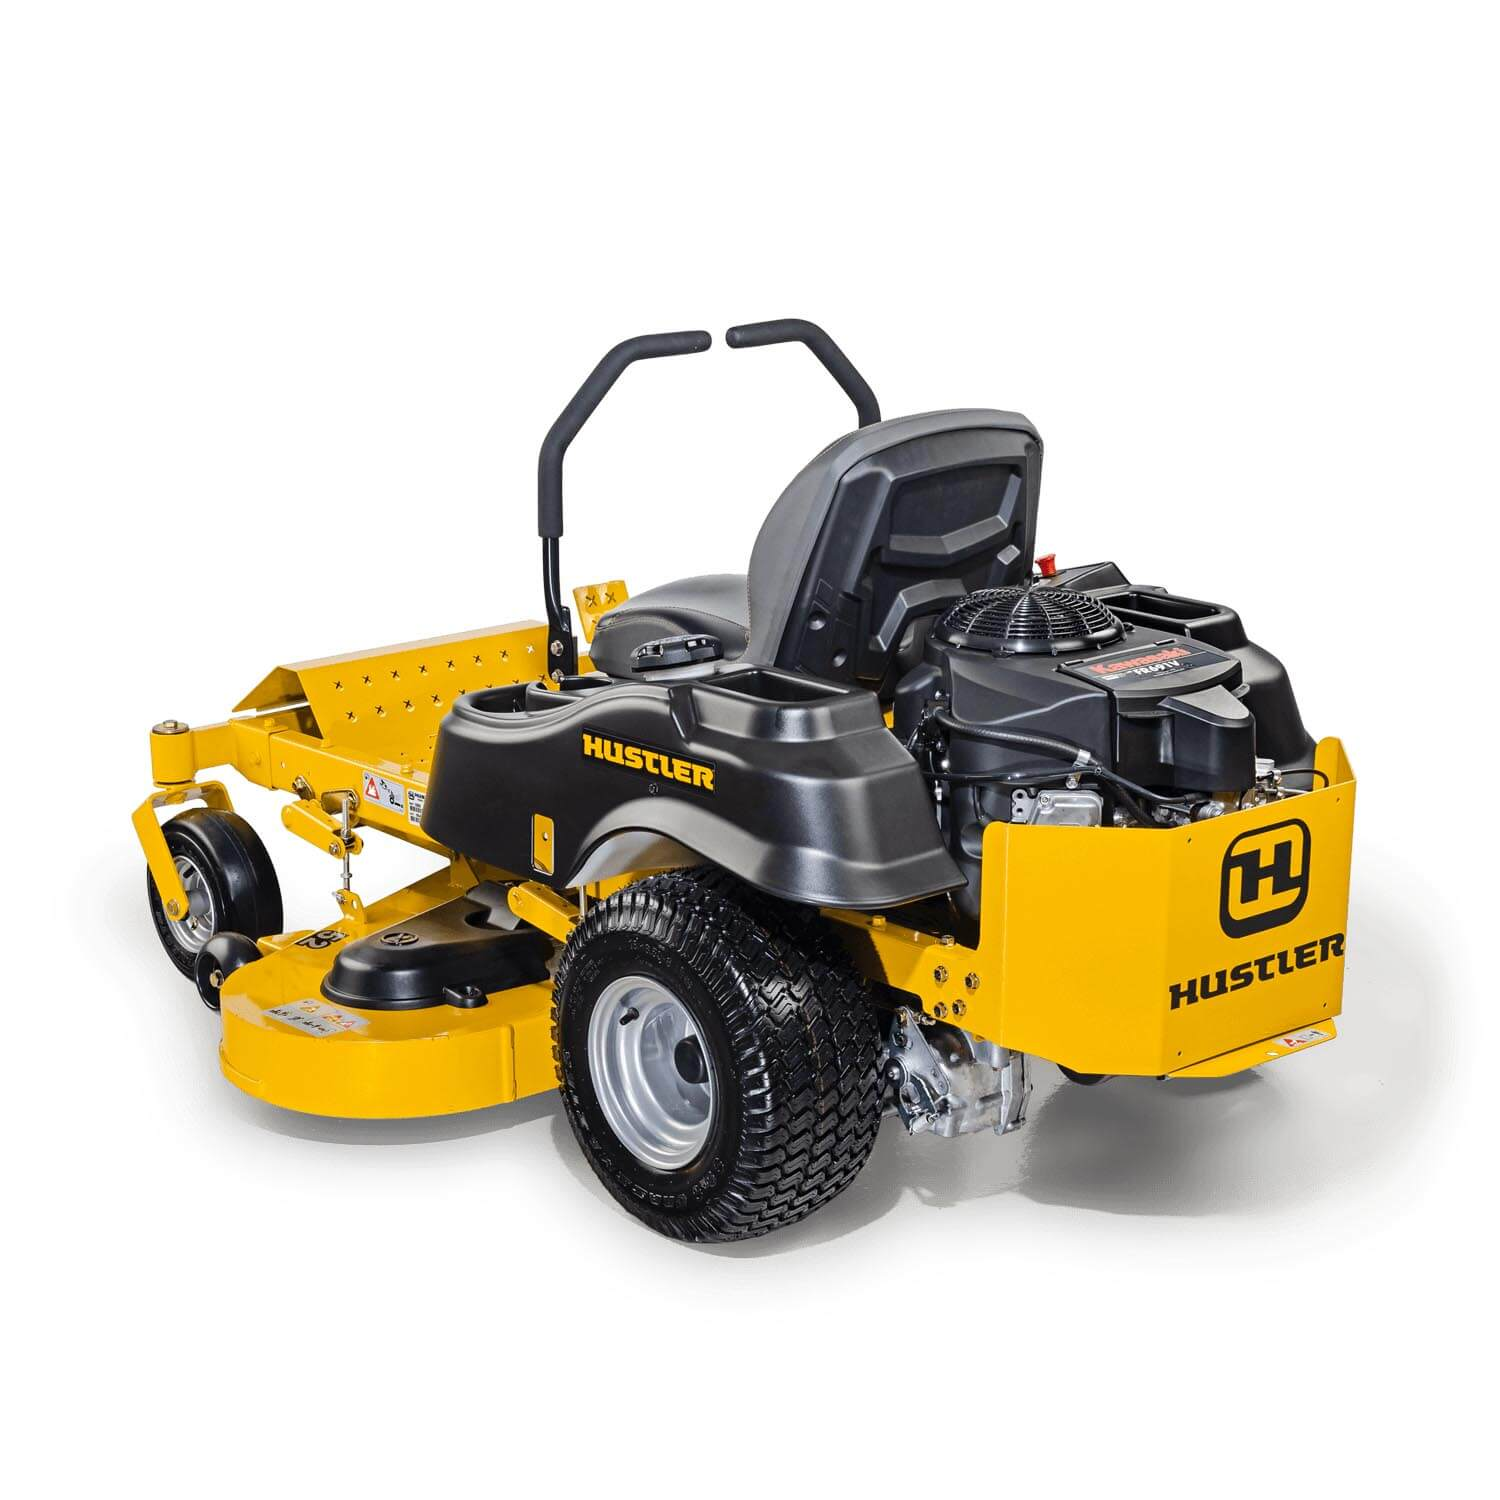 Image of the rear three quarters of a yellow Hustler mower